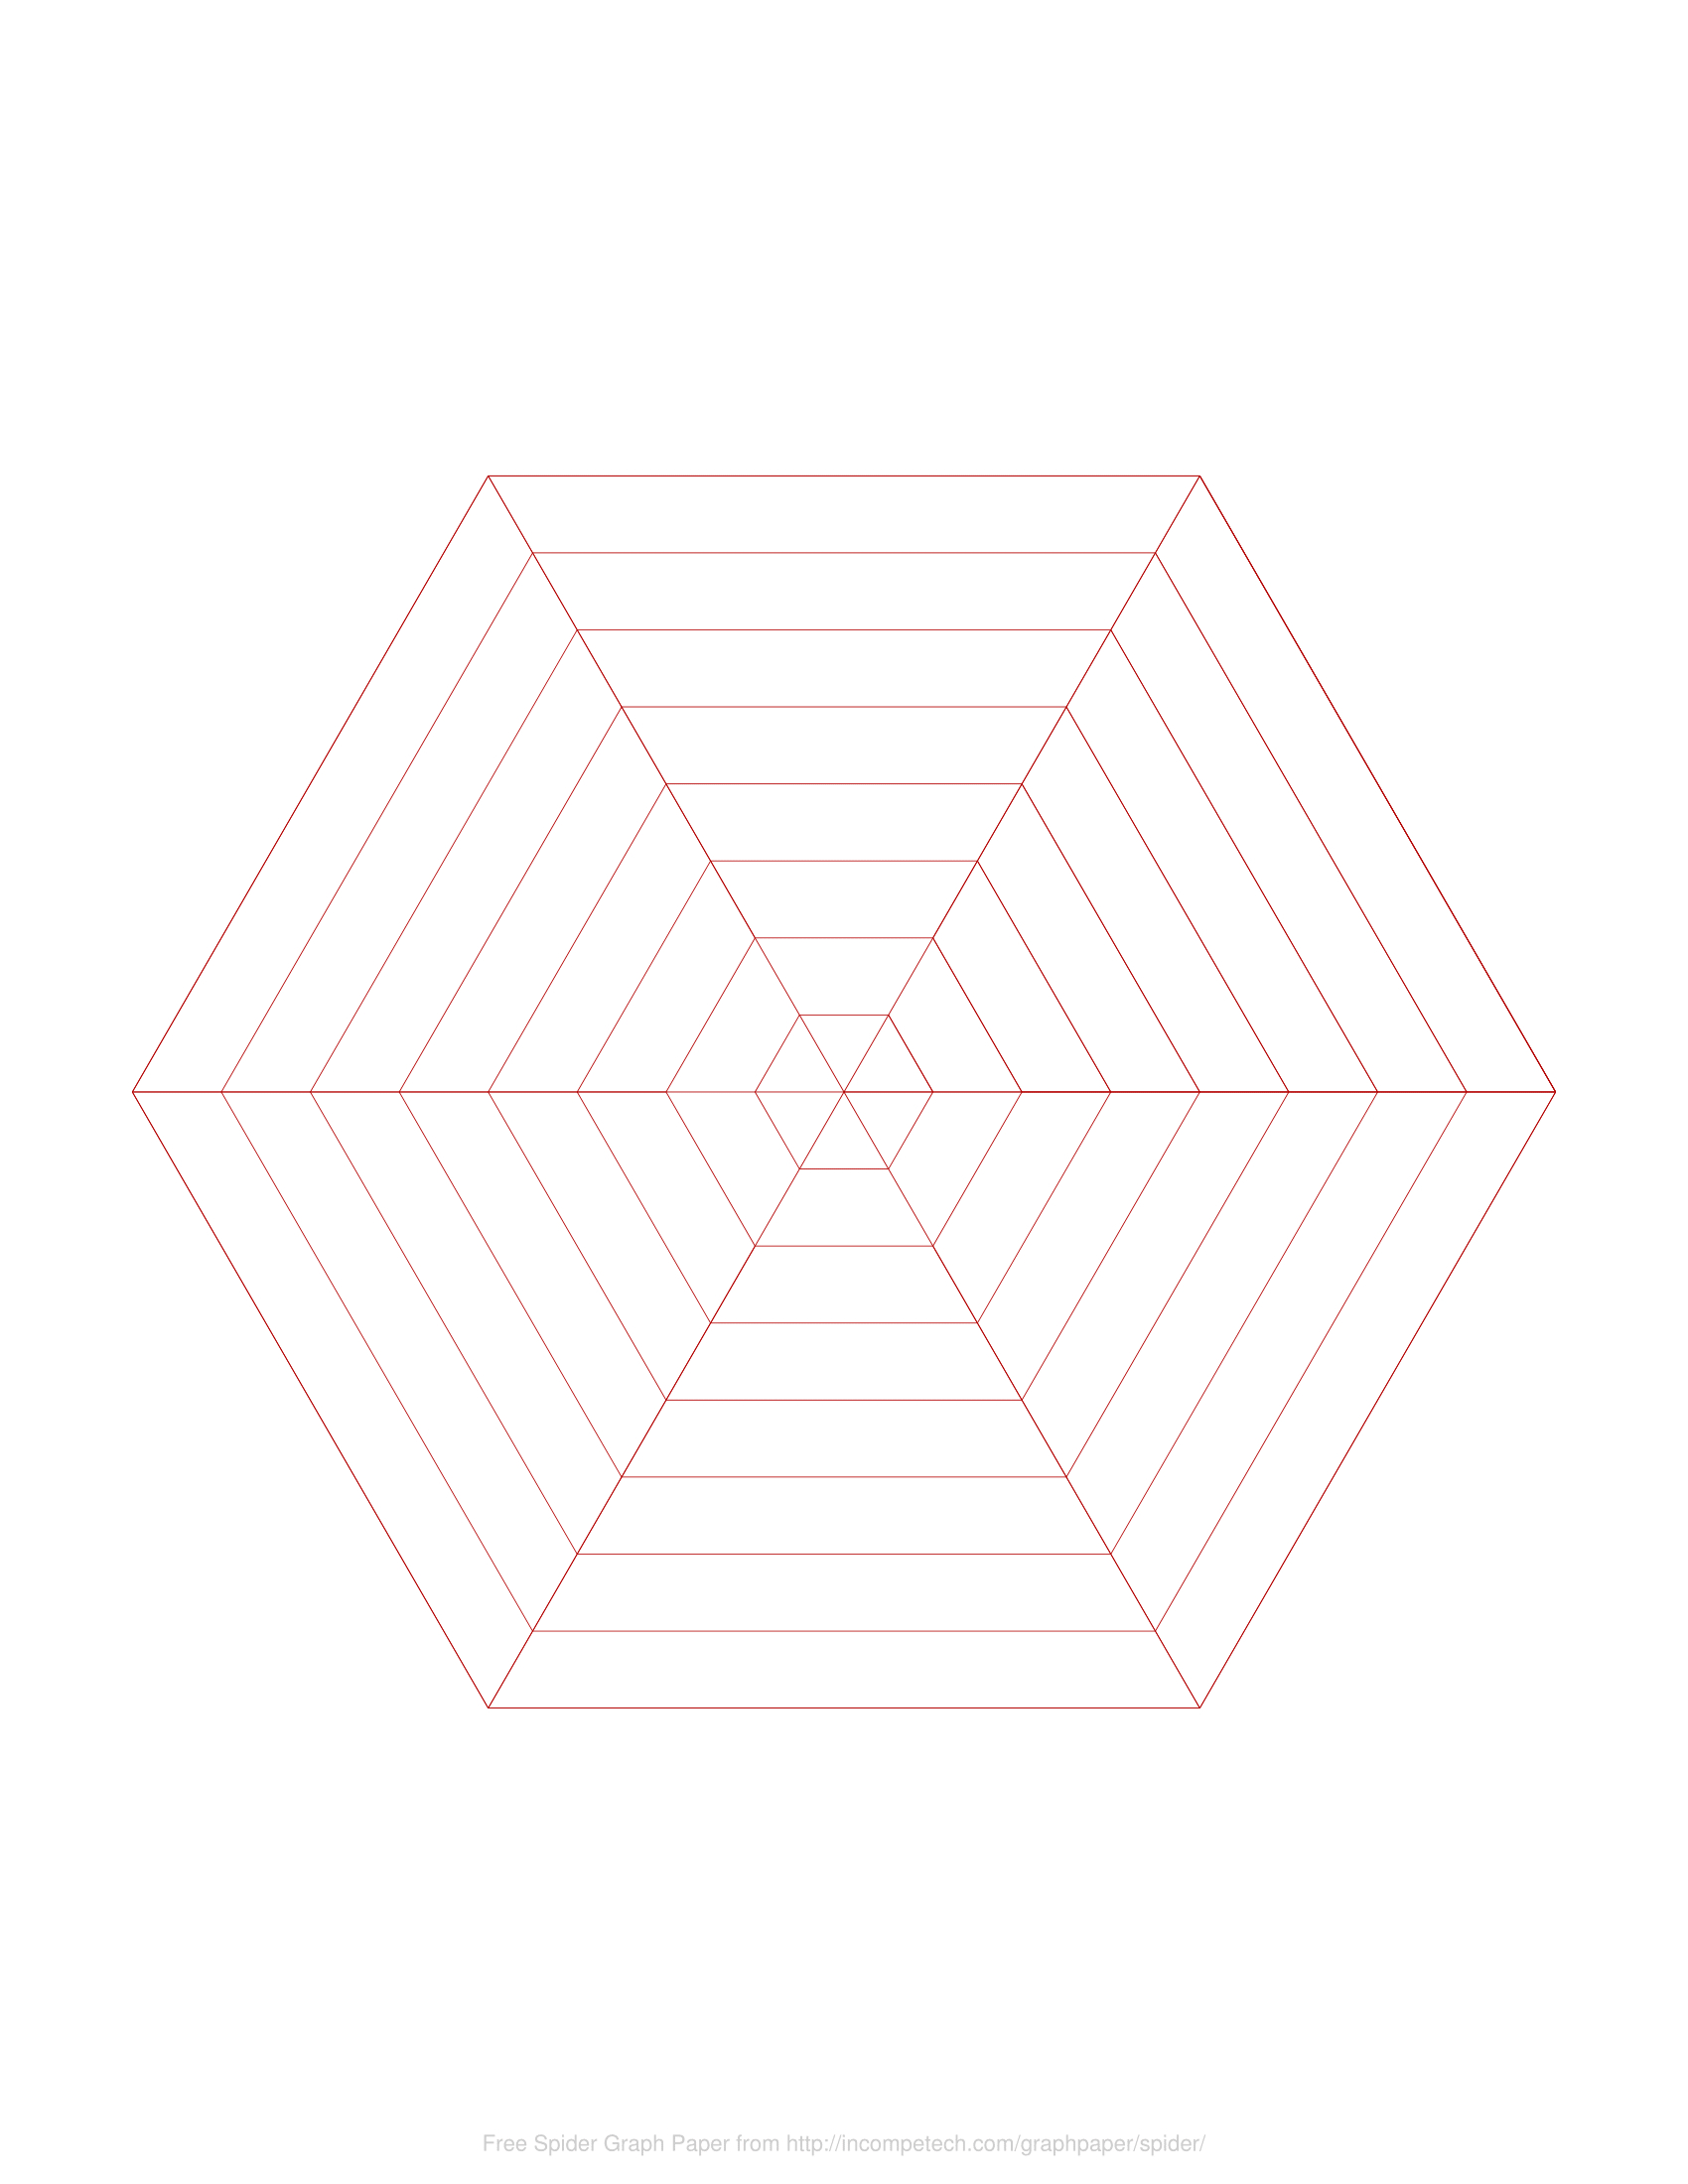 Free Online Graph Paper / Spider For Blank Radar Chart Template